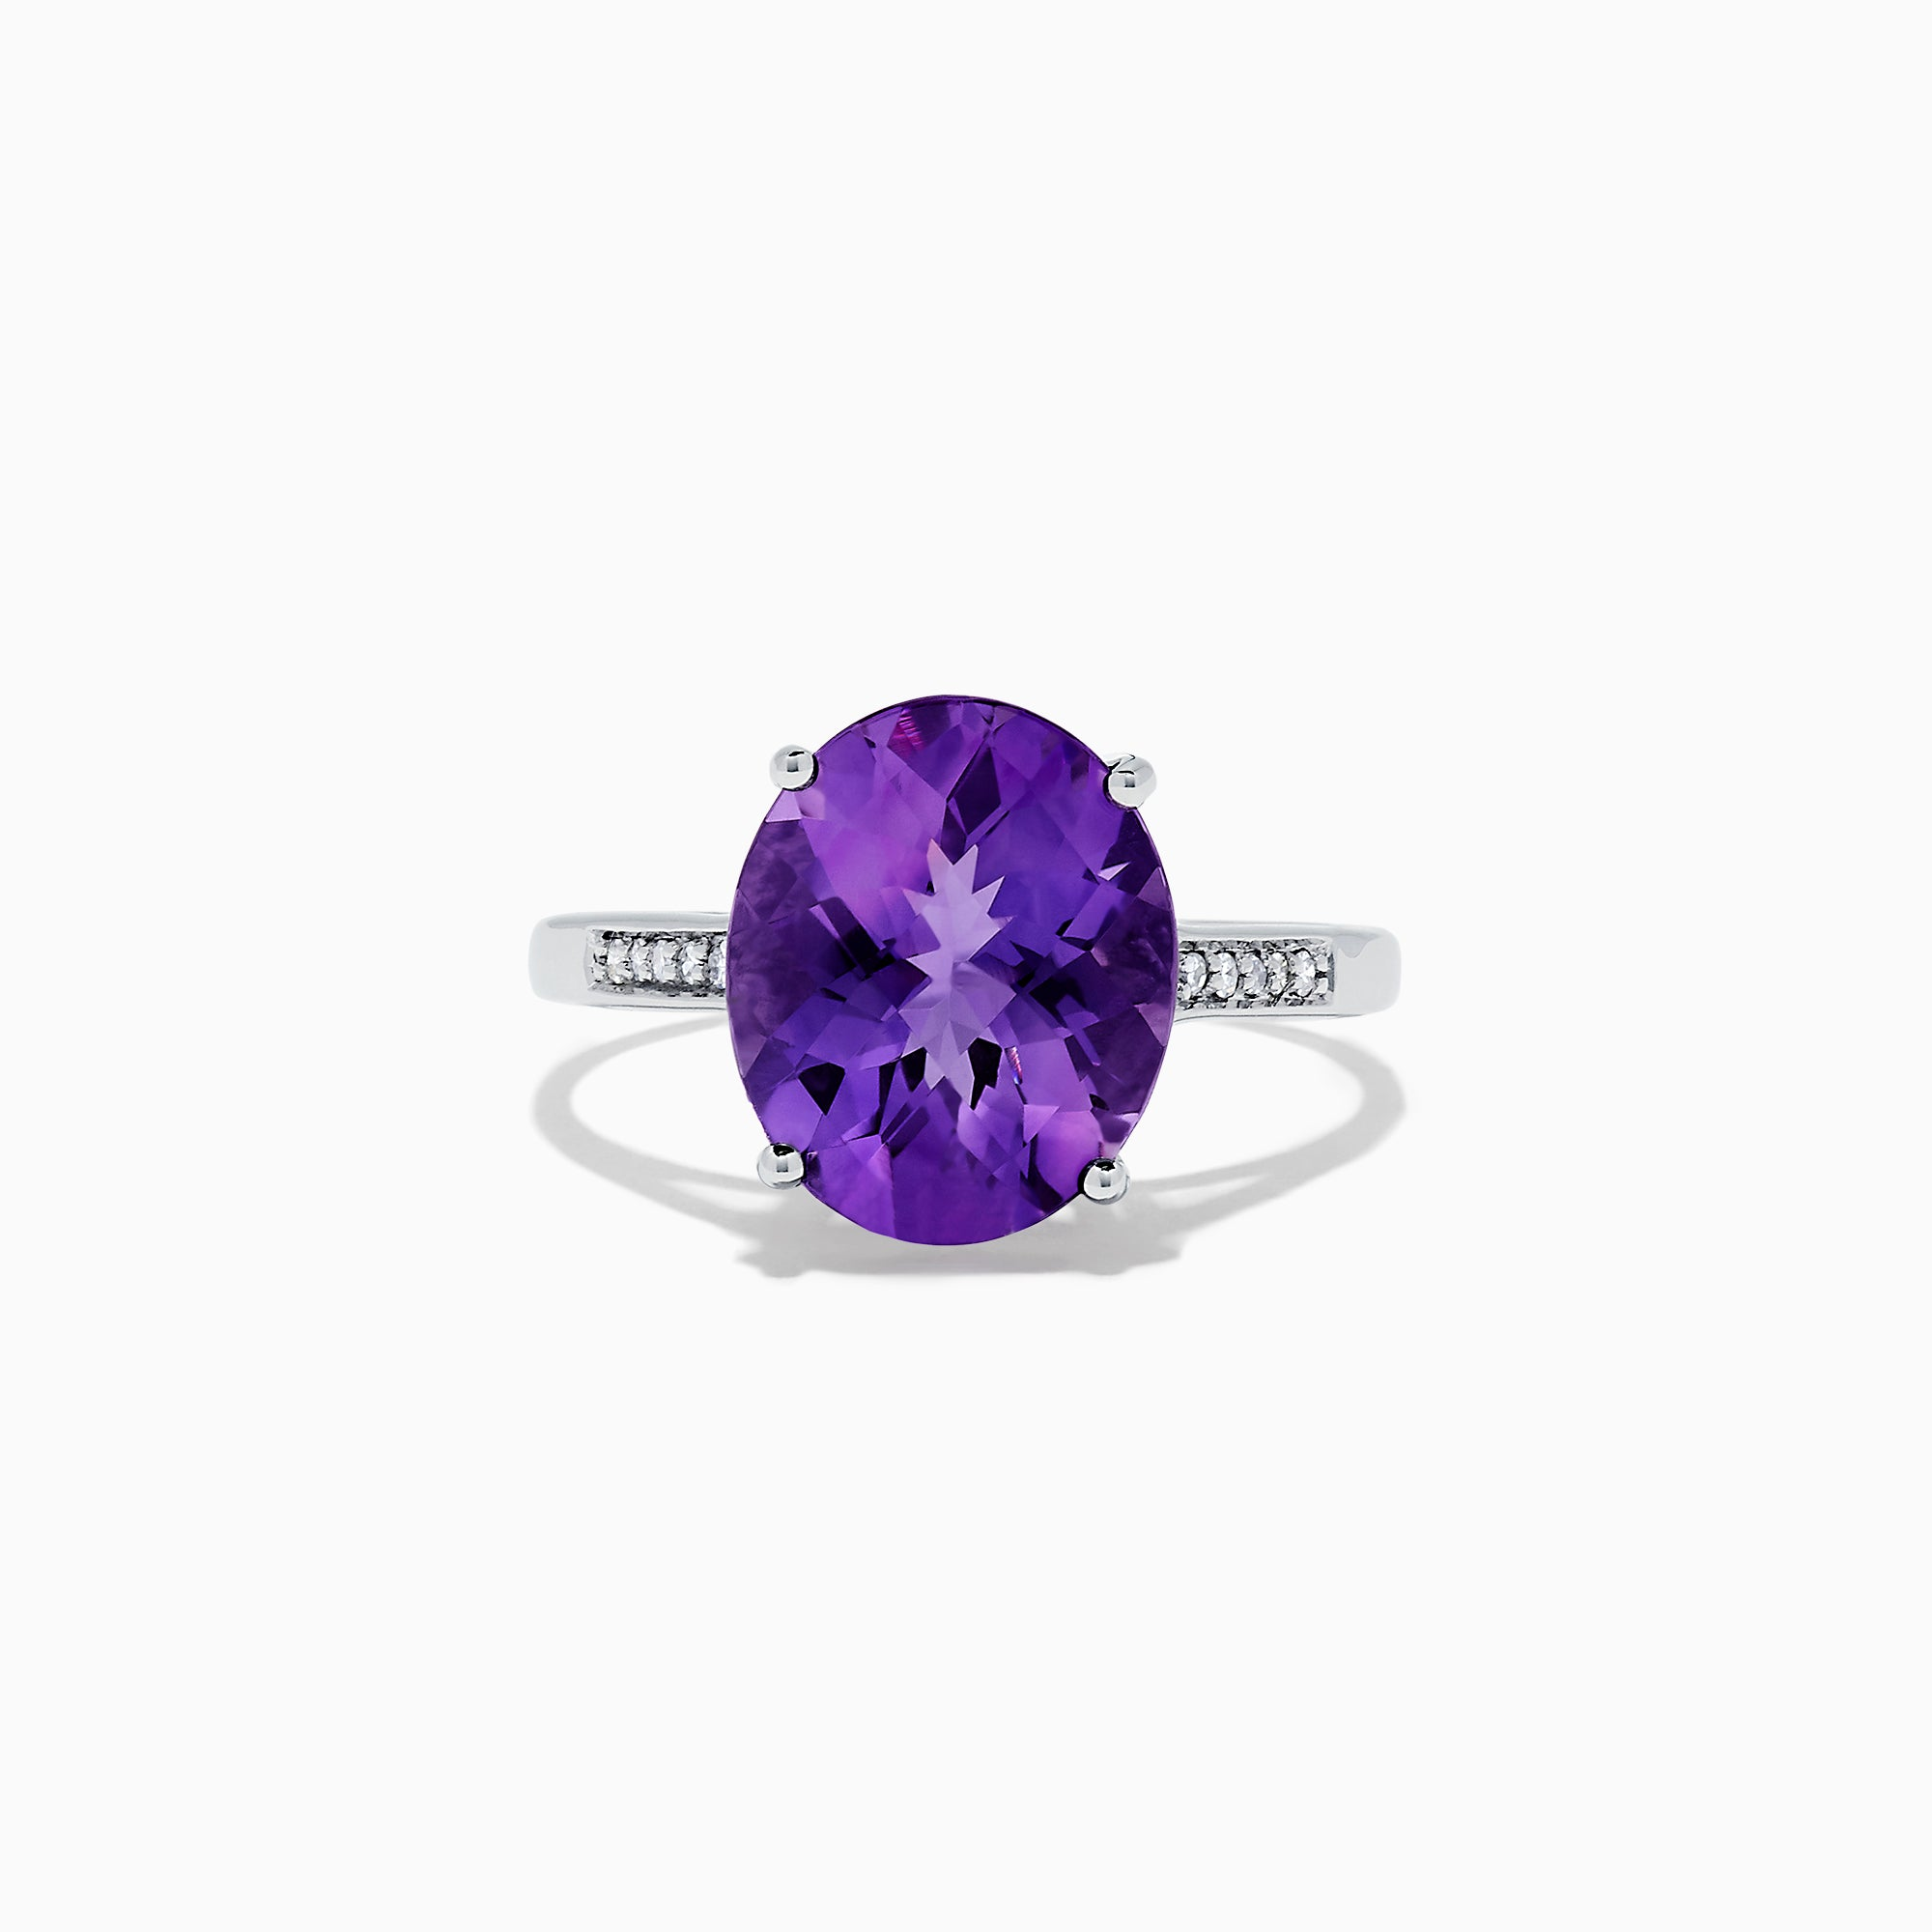 Effy 14K White Gold Amethyst and Diamond Ring, 4.19 TCW